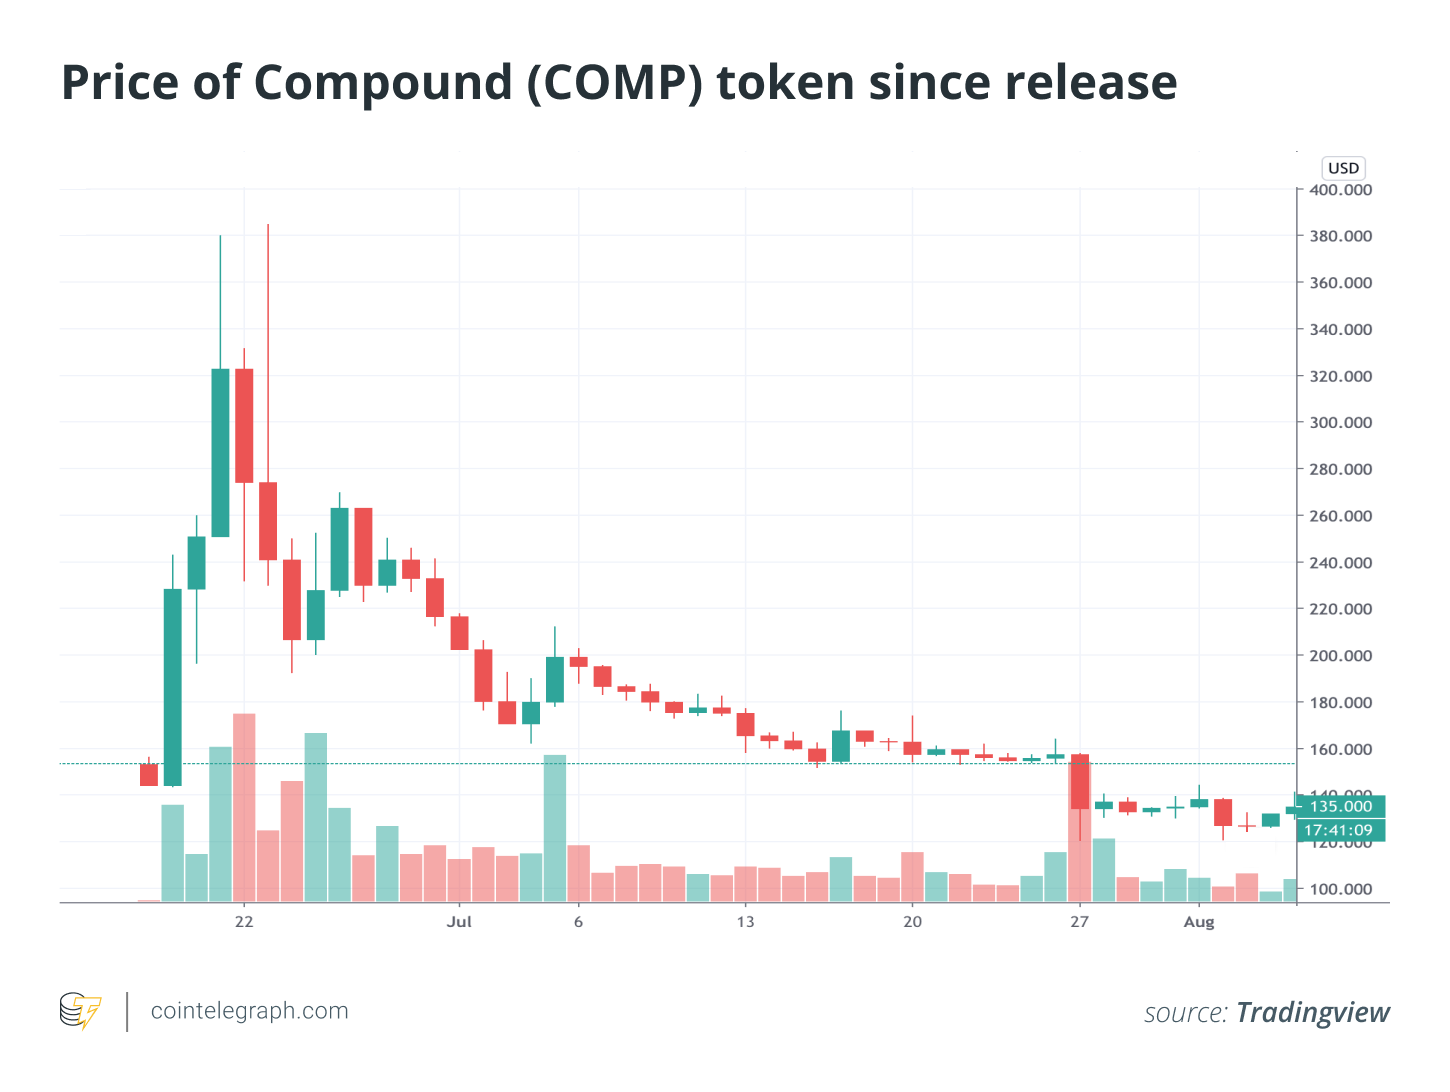 COMP token price chart